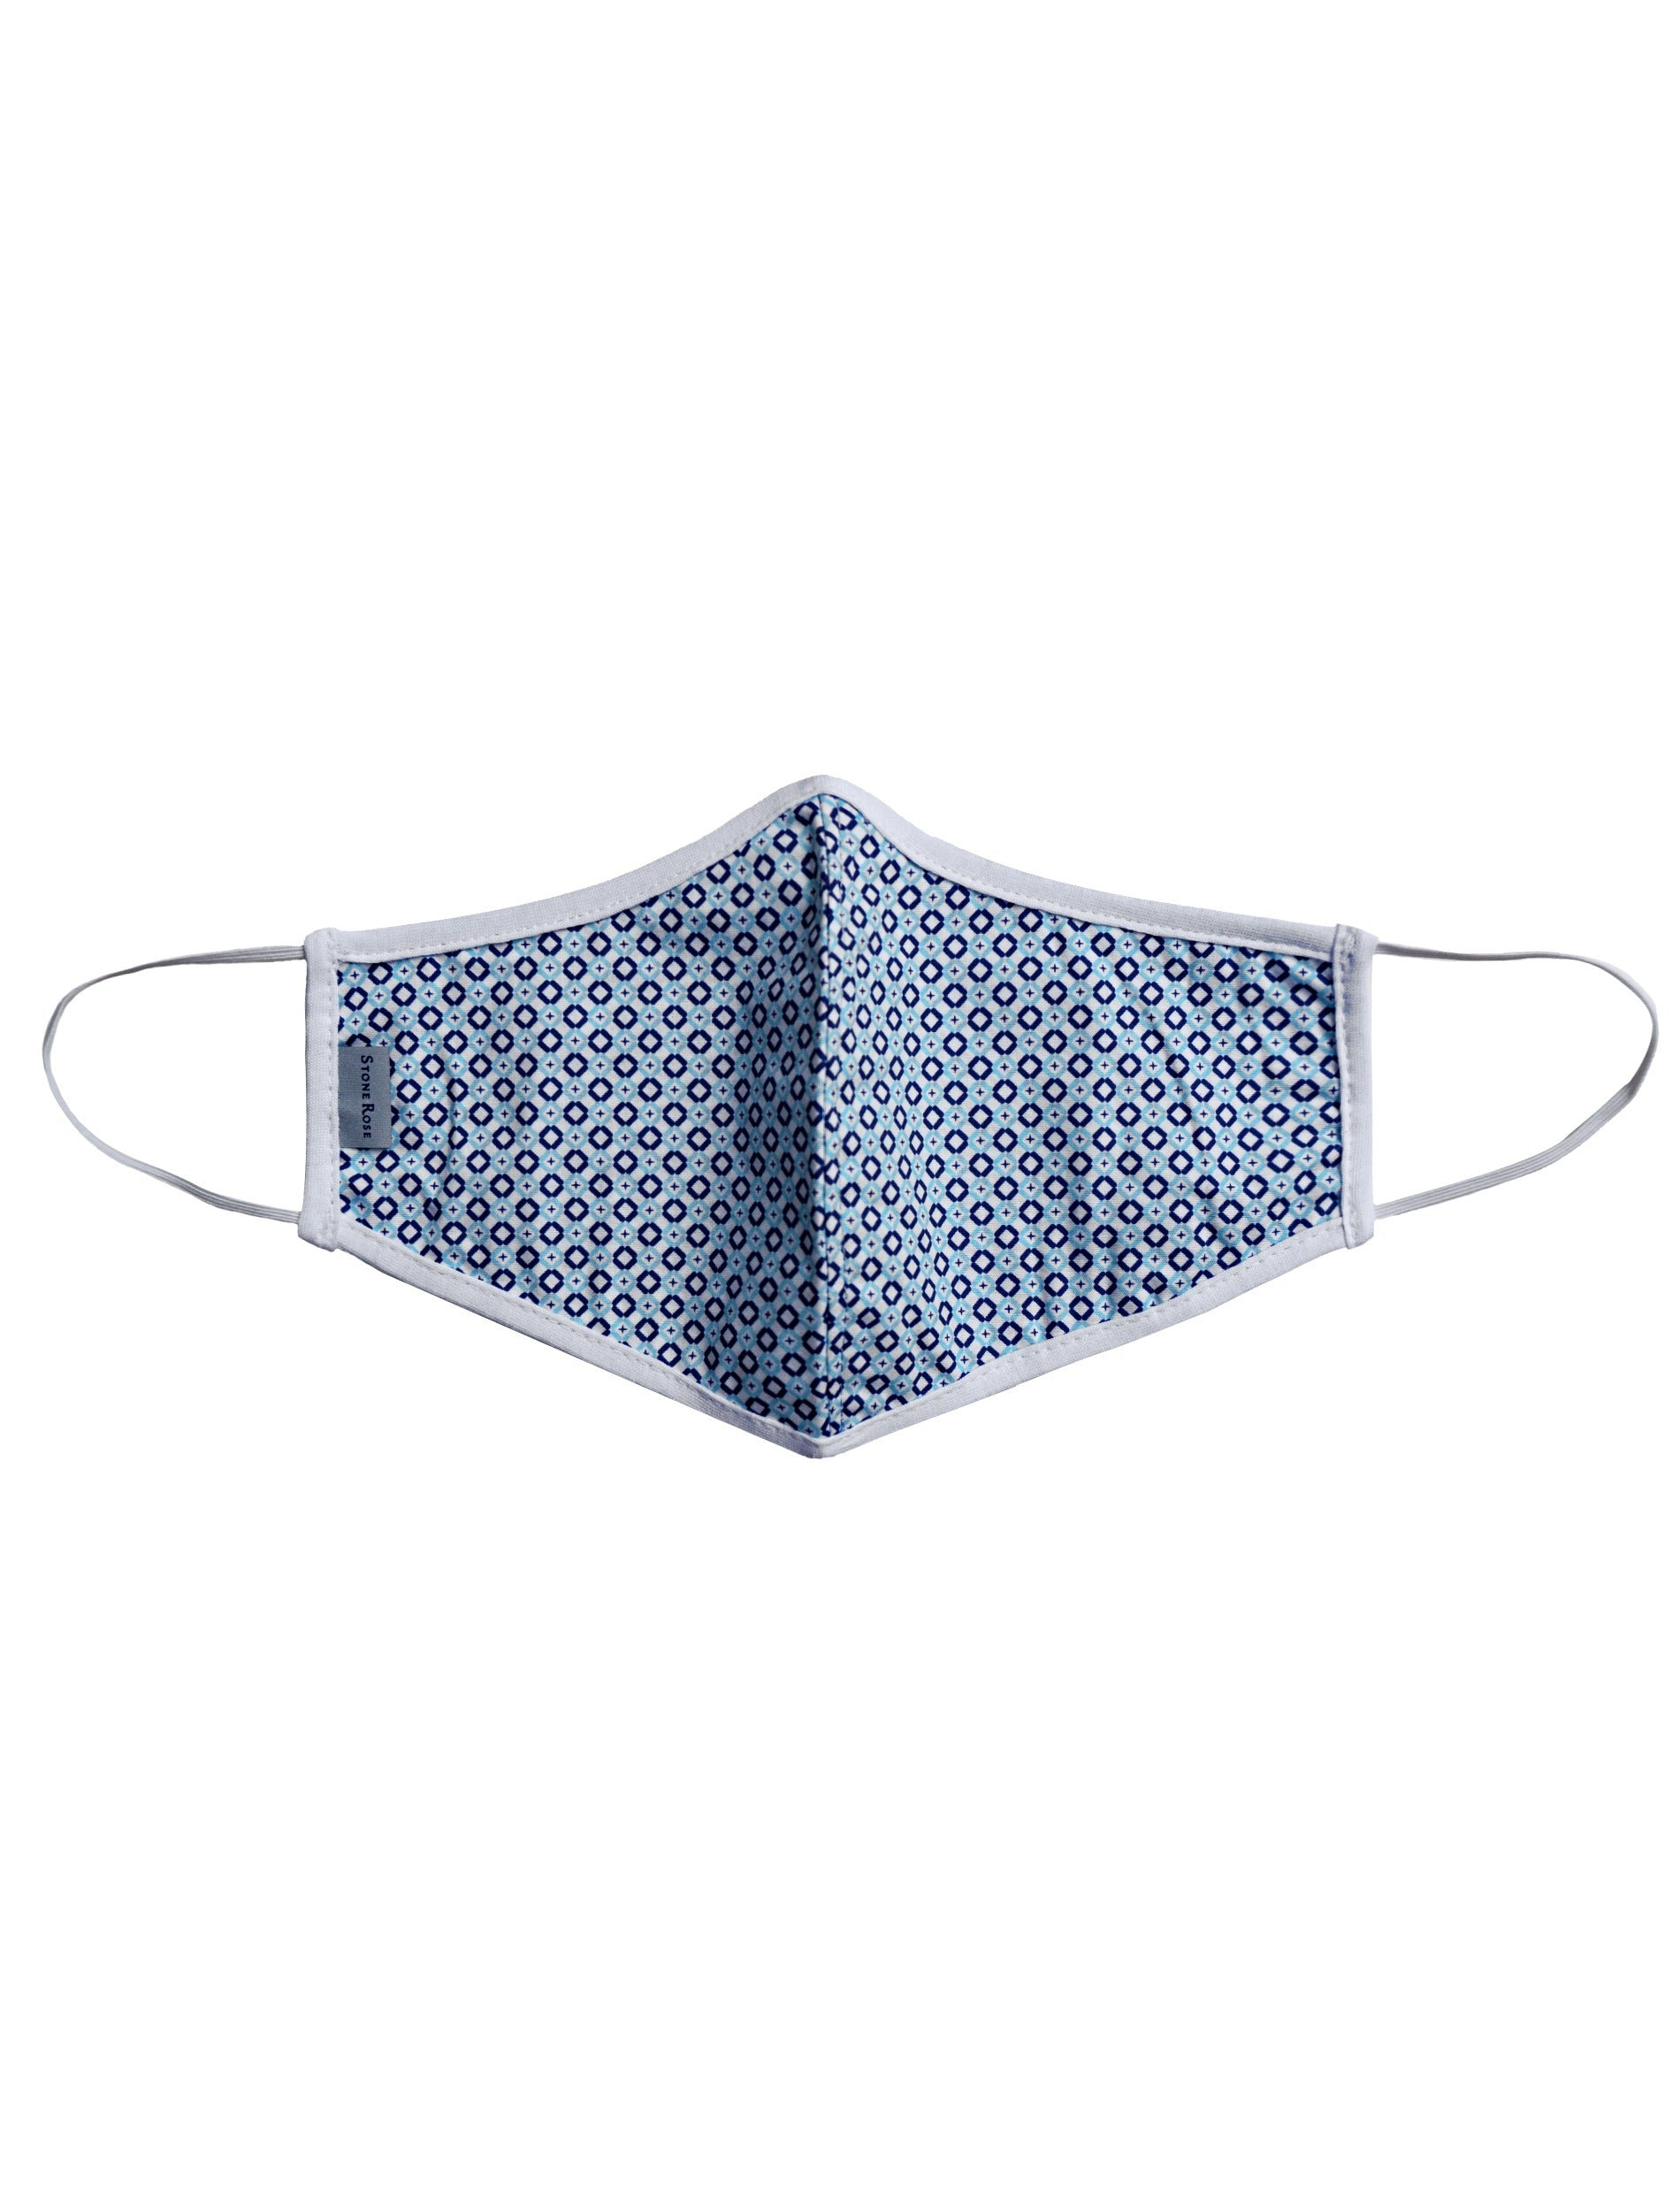 Geometric Square Navy - Reusable Lighweight Face Mask